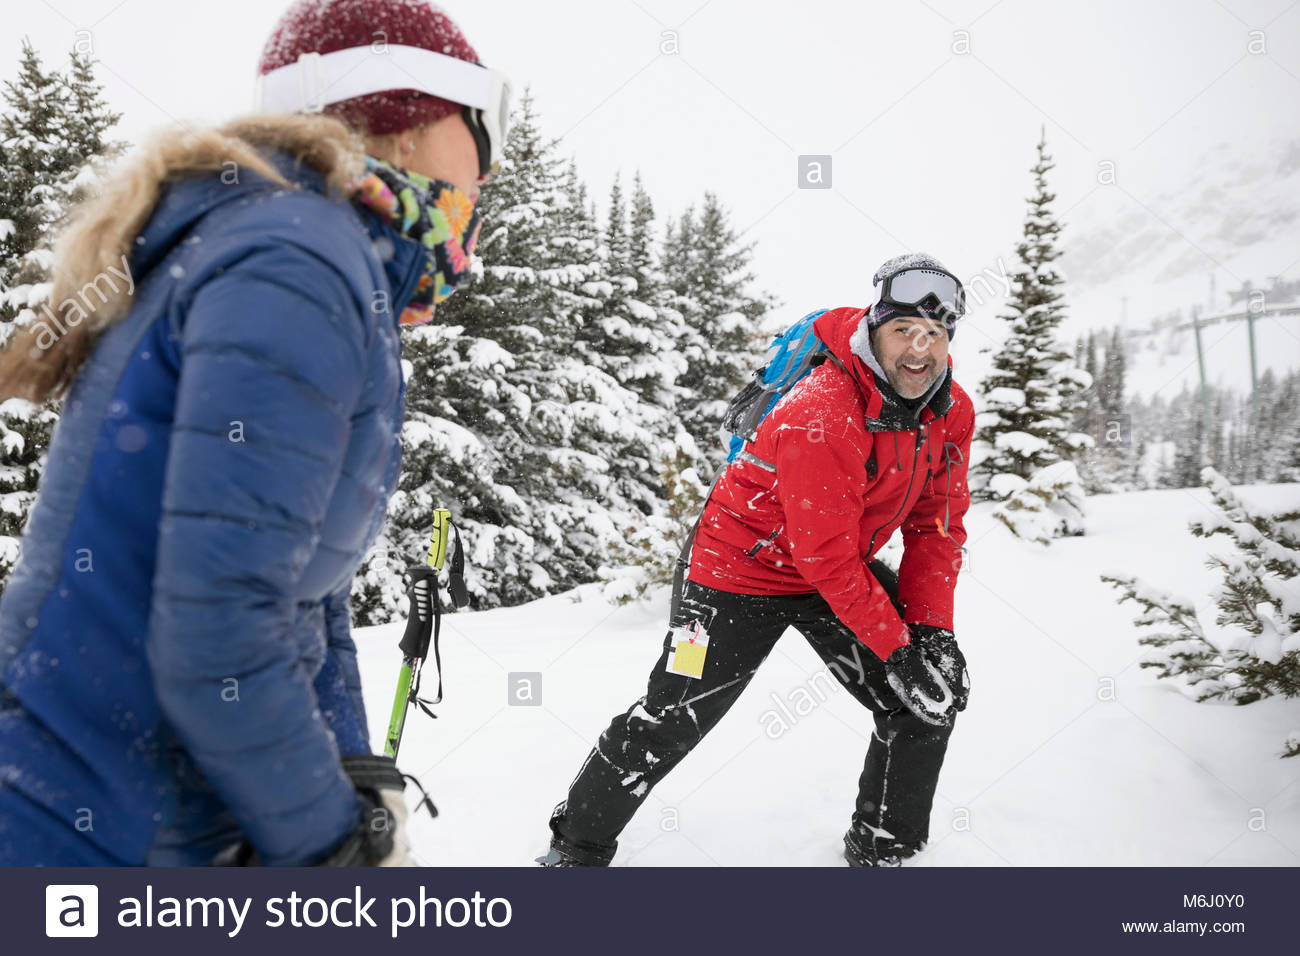 Playful couple snowshoeing, enjoying snowball fight in snow - Stock Image